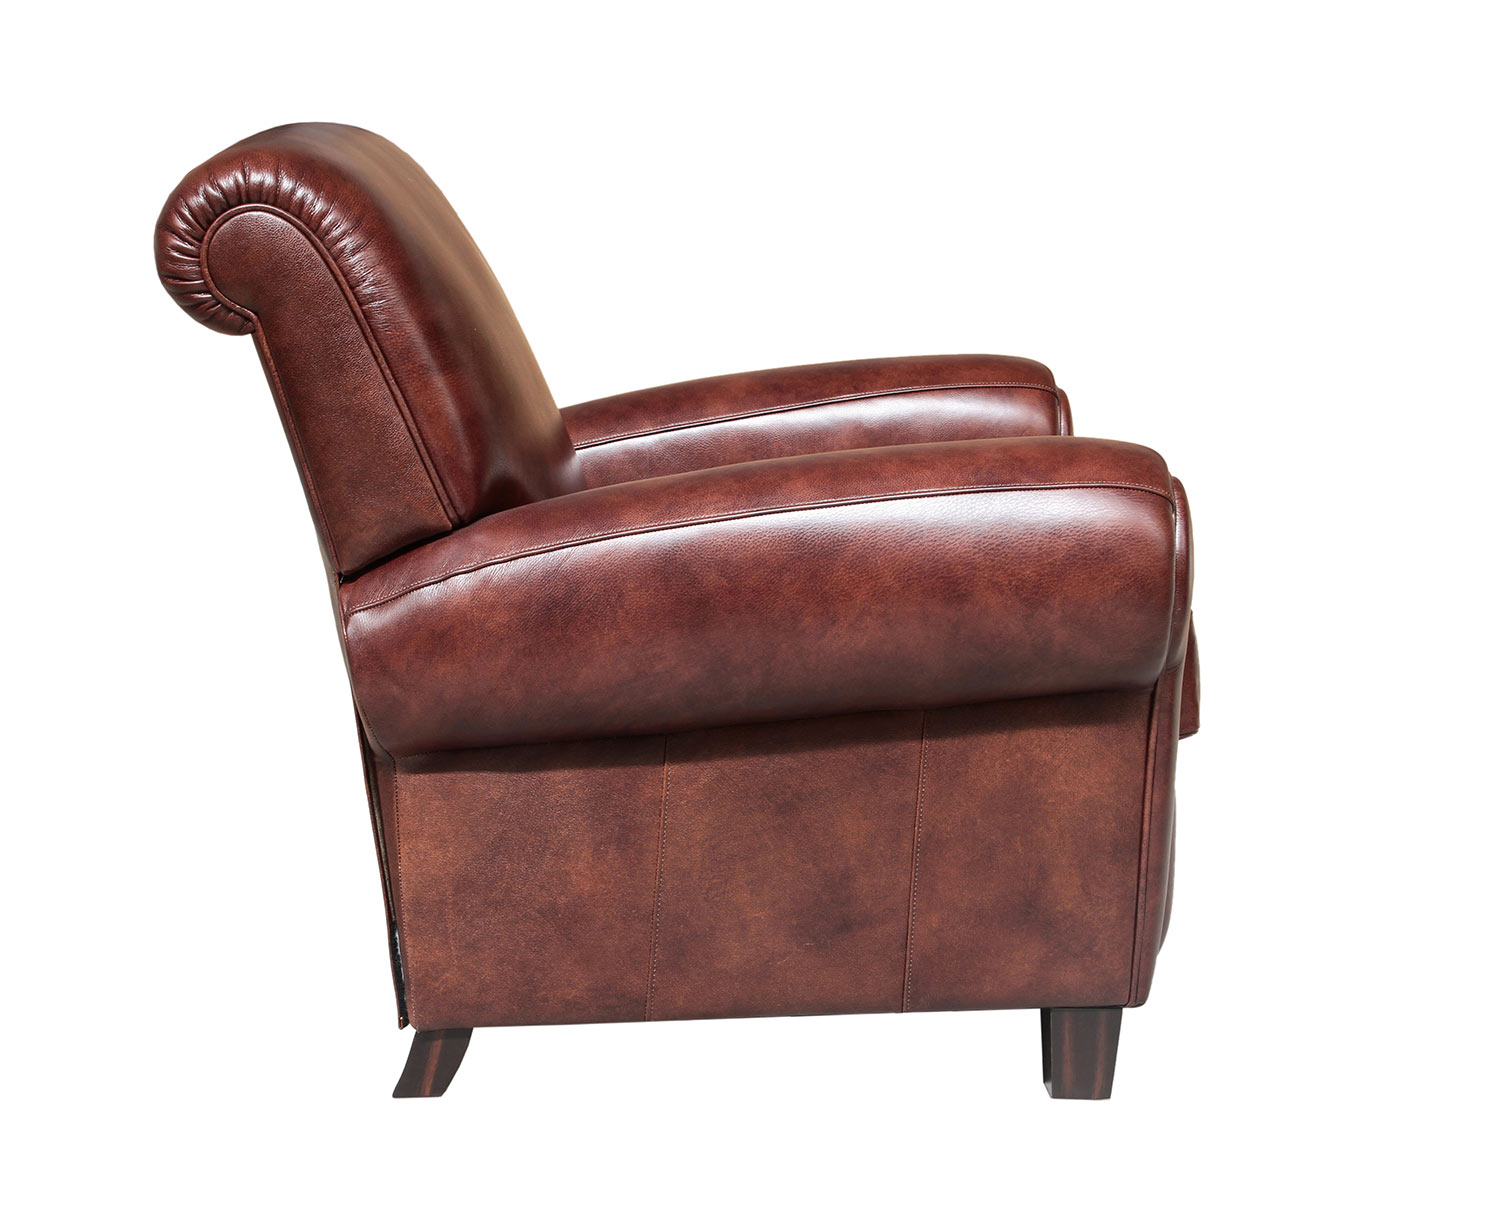 Barcalounger Edwin Recliner Chair - Wenlock Fudge/All Leather